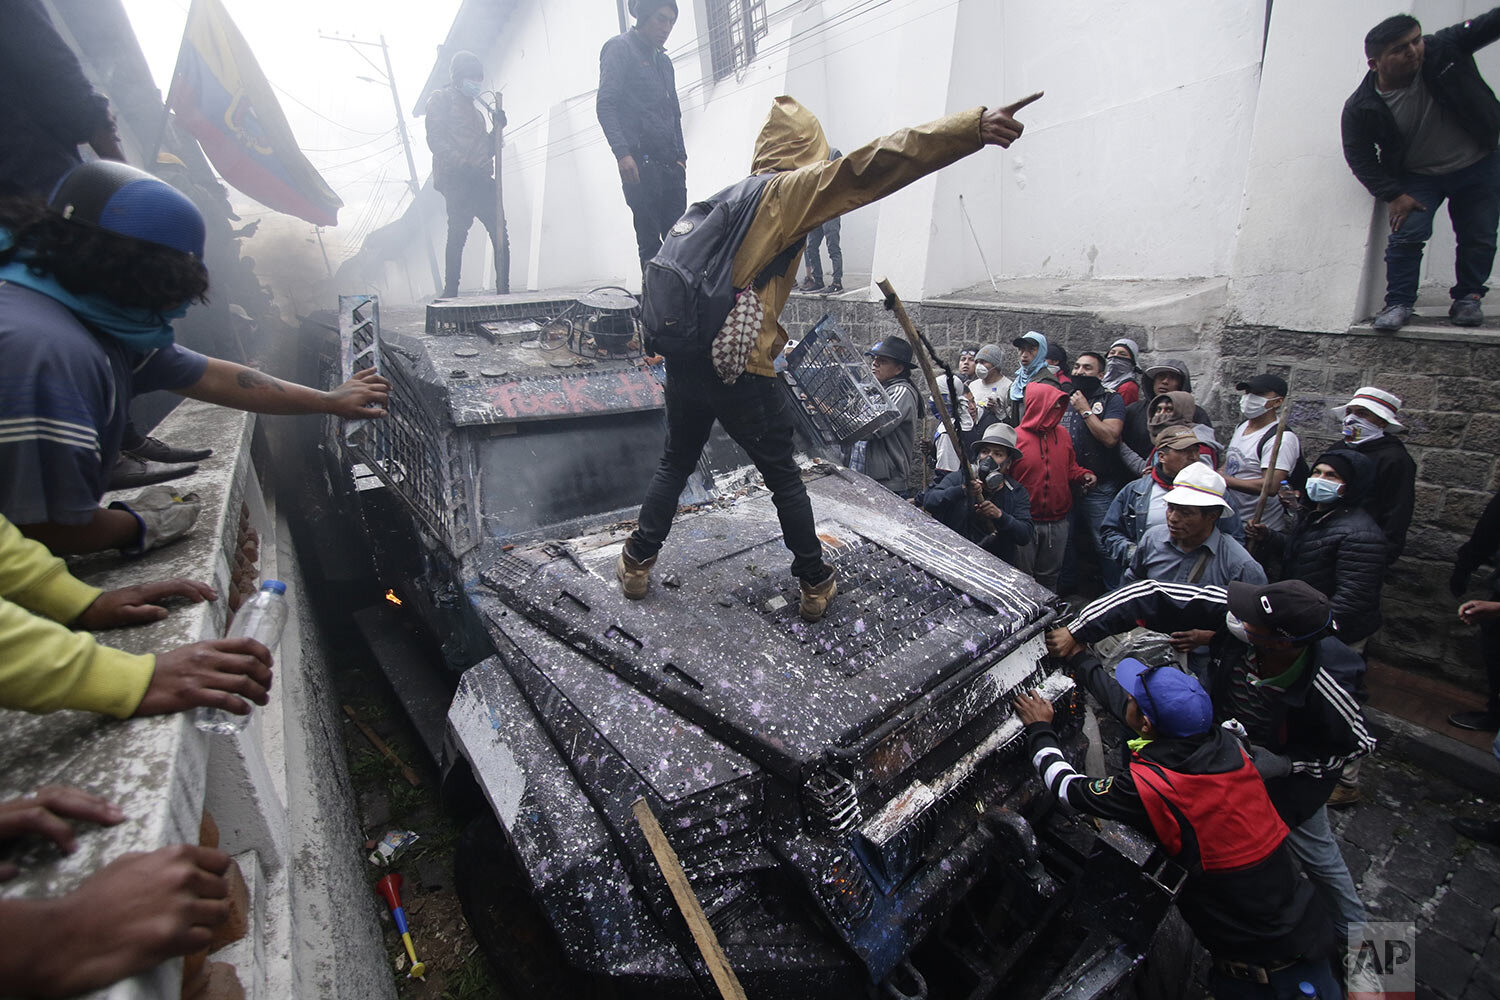 Anti-government demonstrators commandeer an armored vehicle during a nationwide strike against President Lenin Moreno and his economic policies , in Quito, Ecuador, Wednesday, Oct. 9, 2019. Ecuador's military has warned people who plan to participate in a national strike over fuel price hikes to avoid acts of violence. The military says it will enforce the law during the planned strike Wednesday, following days of unrest that led Moreno to move government operations from Quito to the port of Guayaquil. (AP Photo/Carlos Noriega)